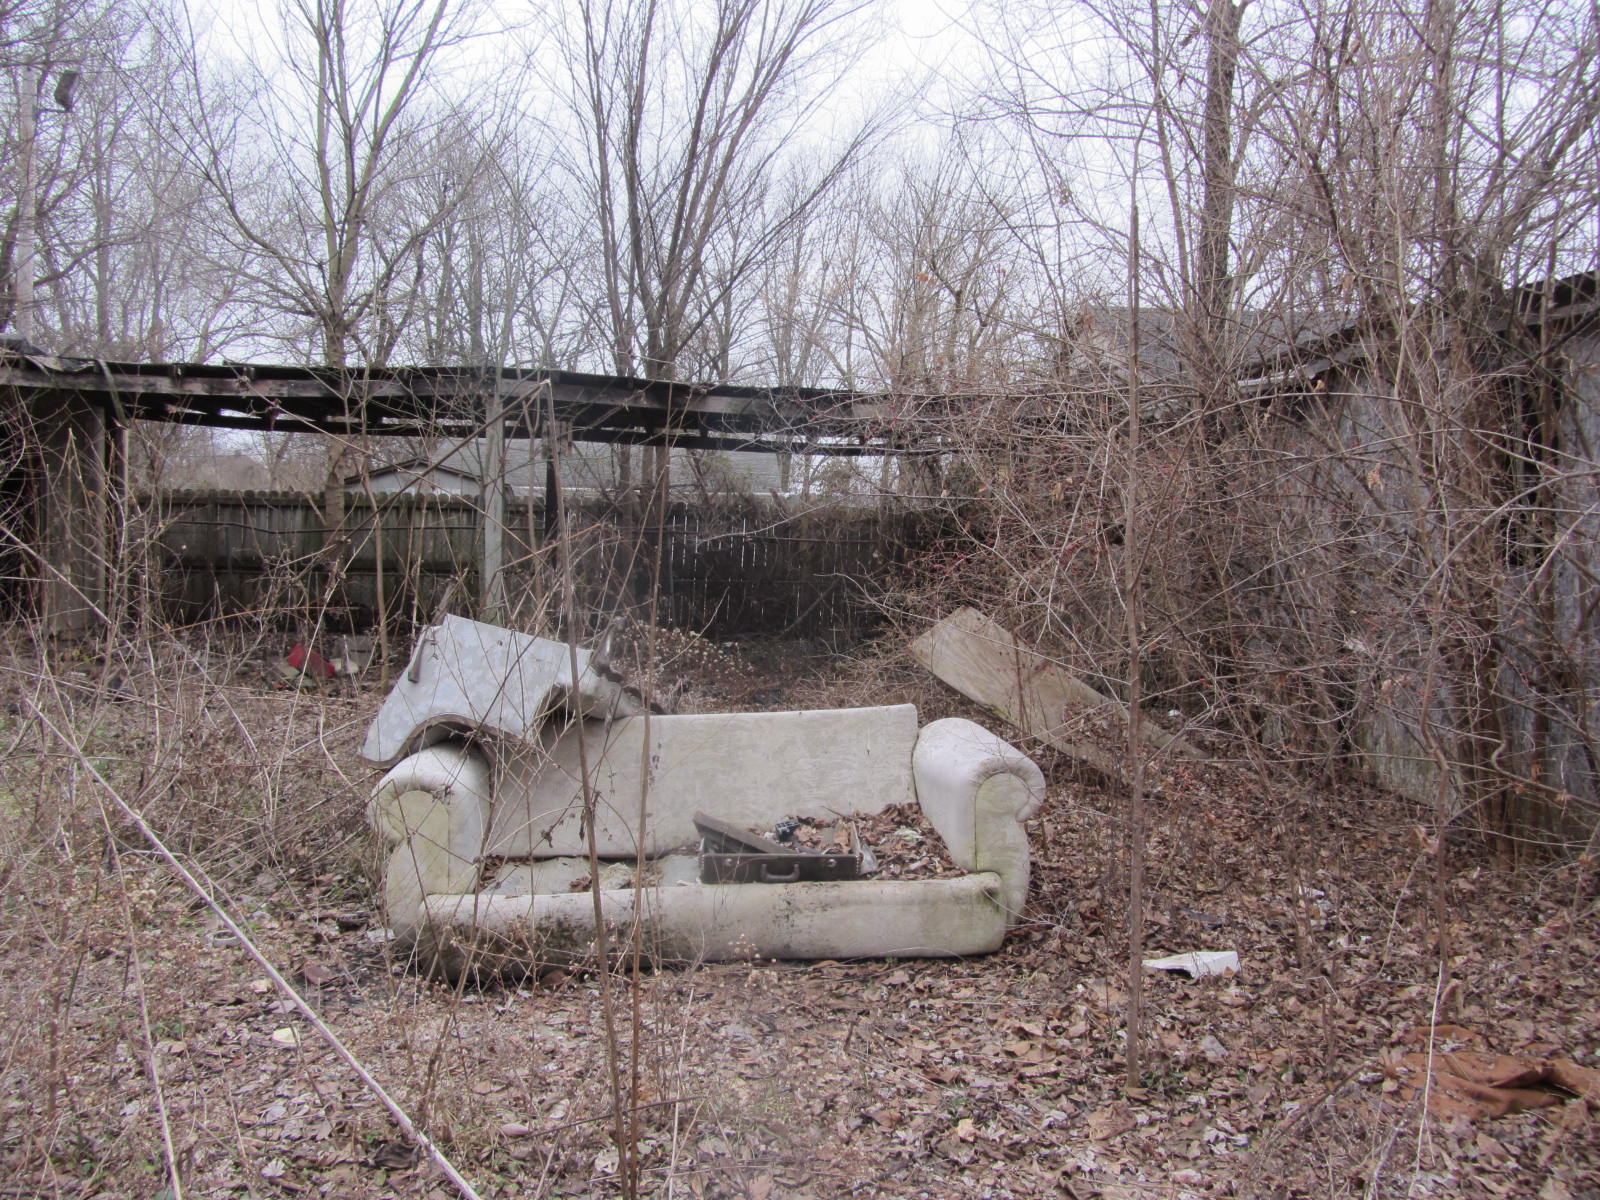 East St. Louis couch in backyard